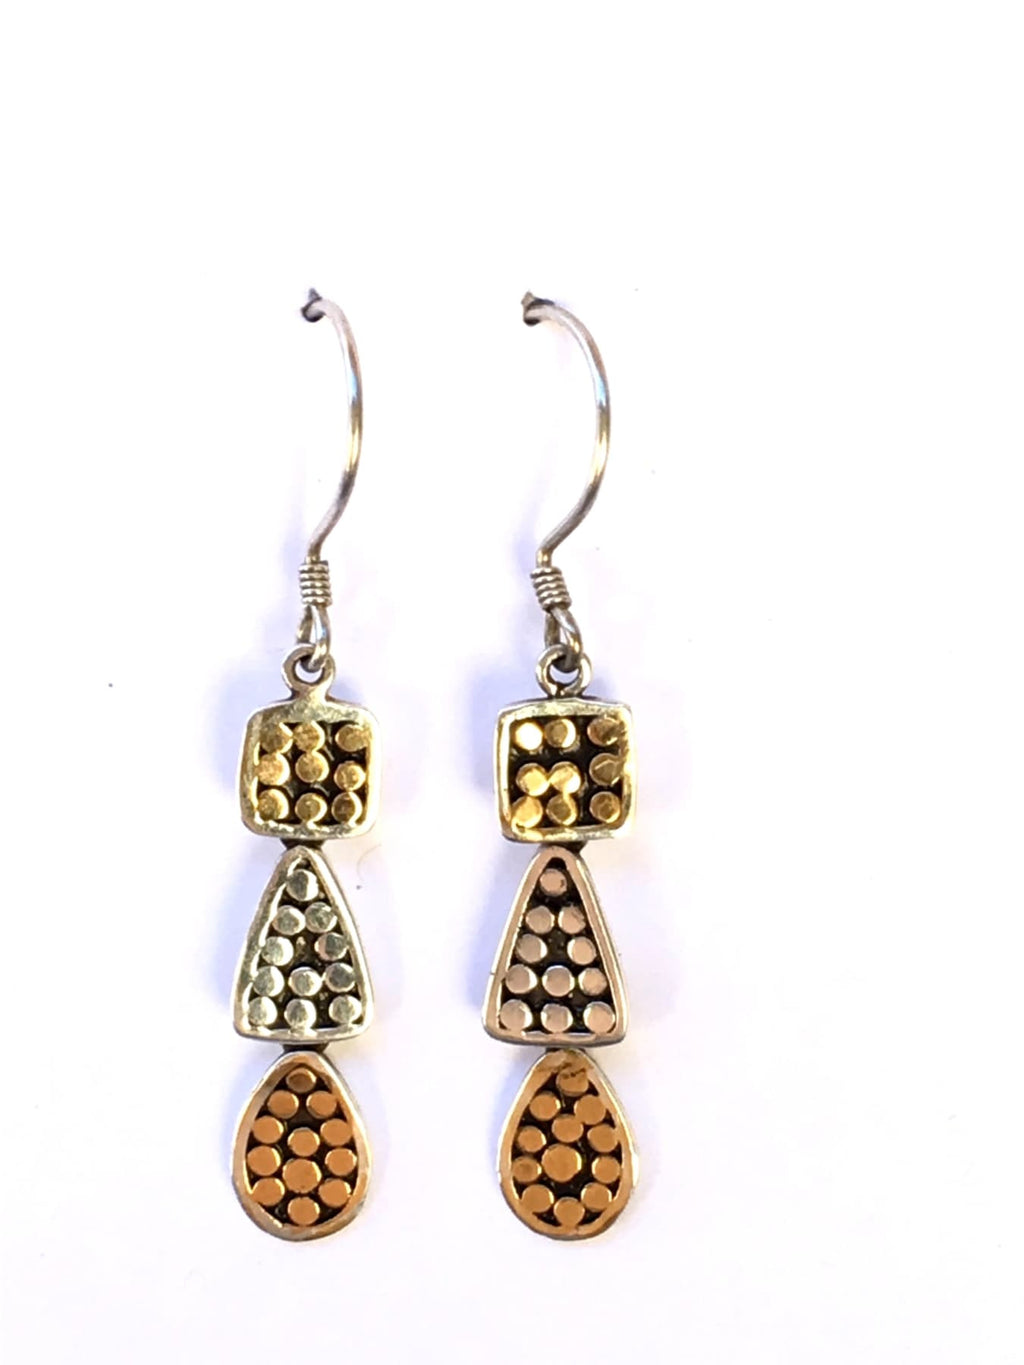 Kathy Kamei Sterling Silver and Gold Geometric Dangle Earrings